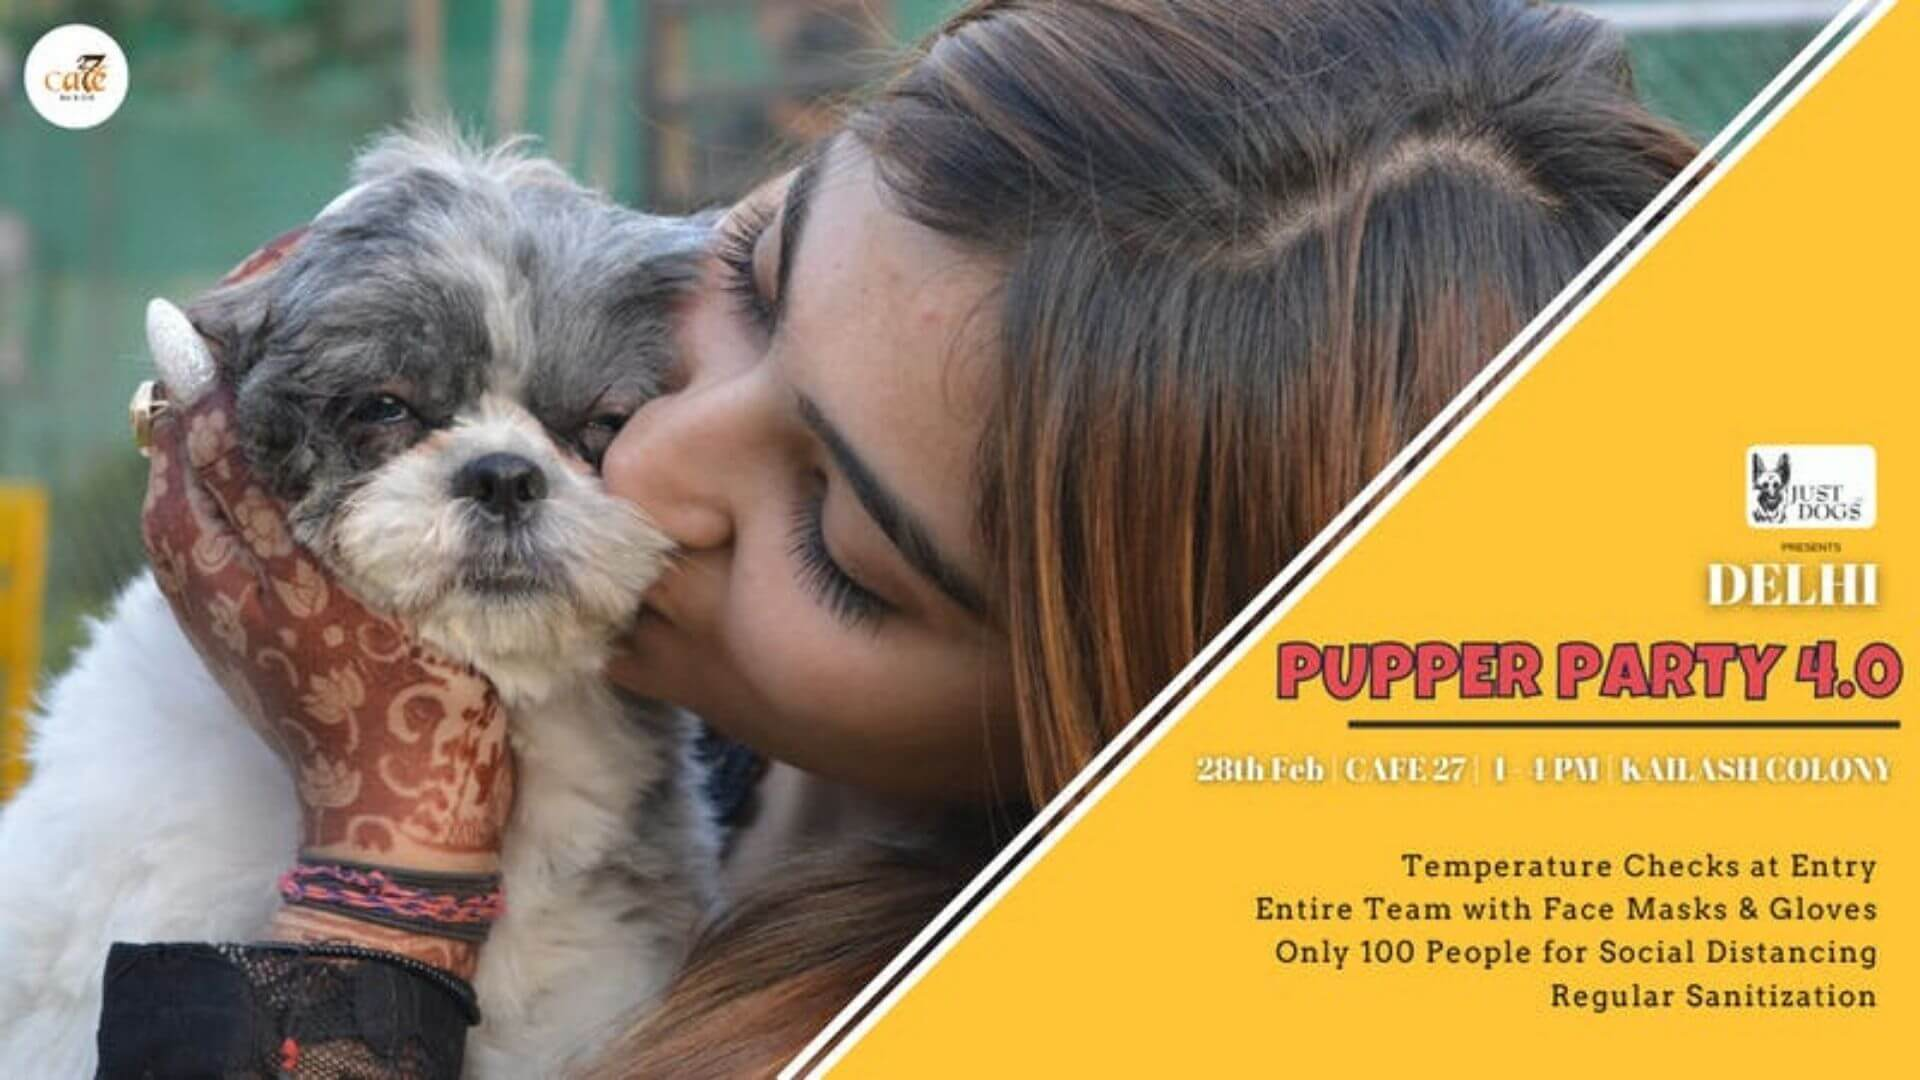 Delhi Pupper Party 4.0 by Petfed and Monkoodog dogsevent